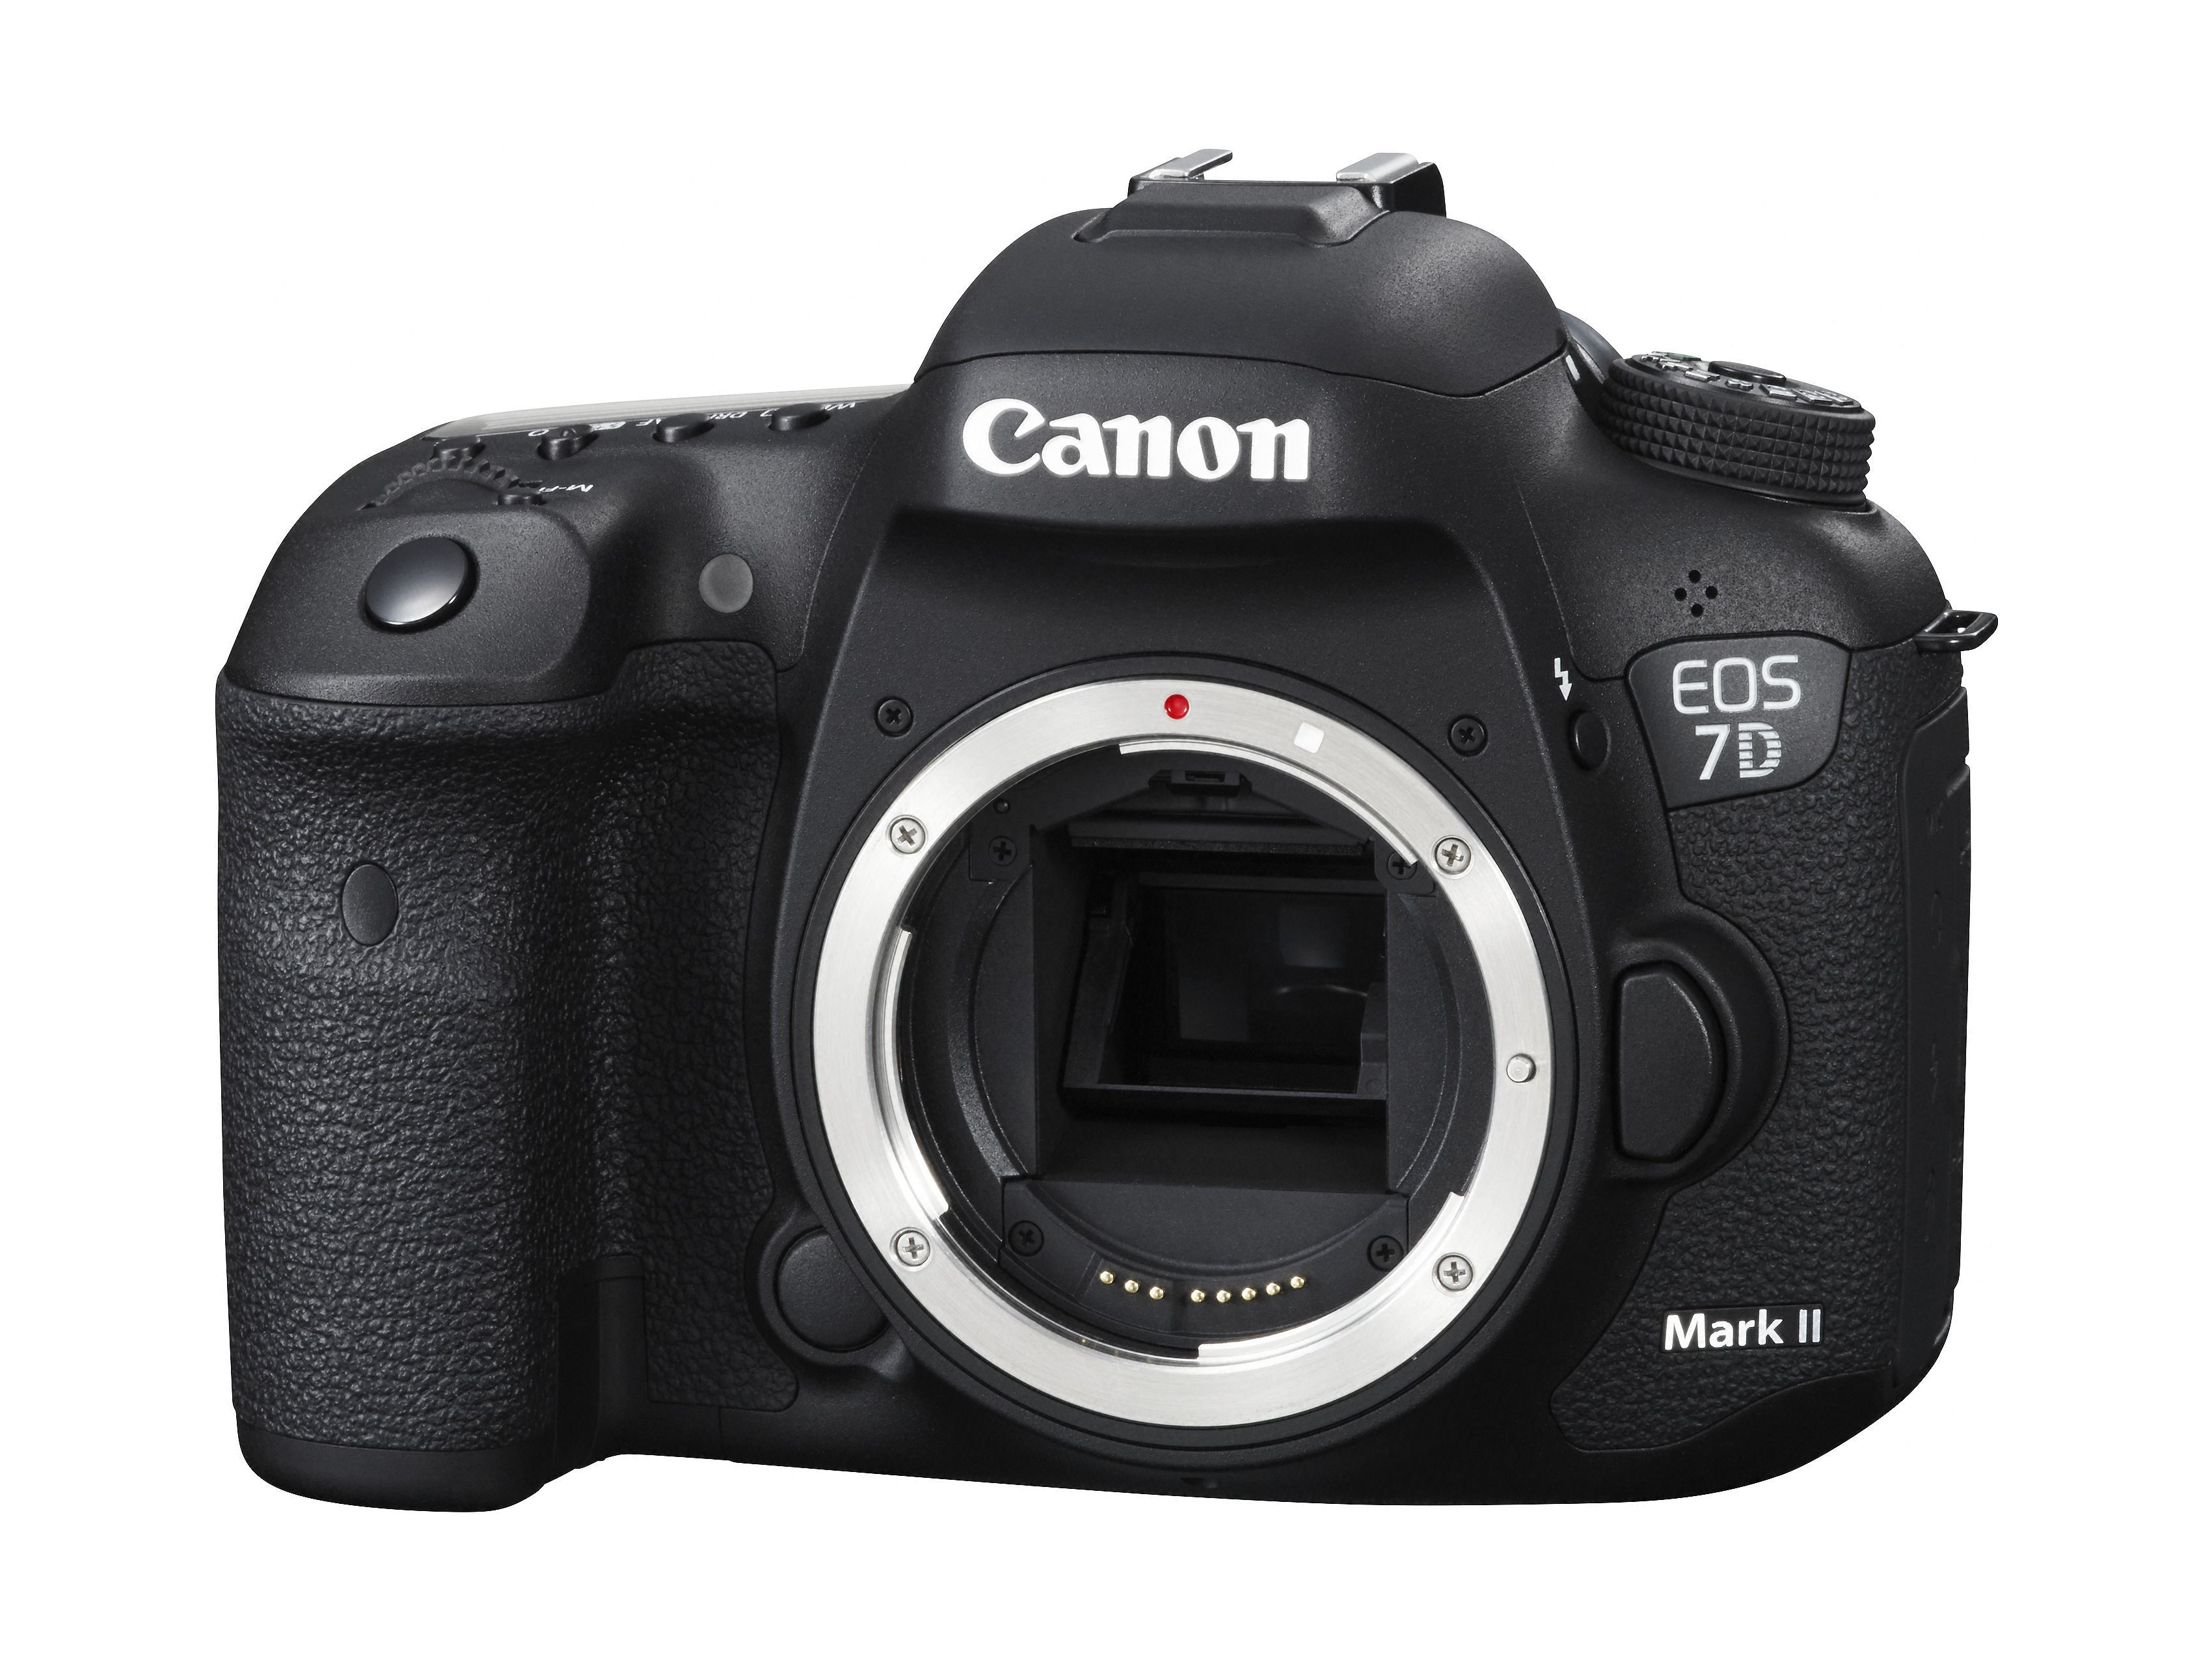 EOS 7D Mark II Digital SLR Camera with EF-S 18-135mm f/3.5-5.6 IS STM